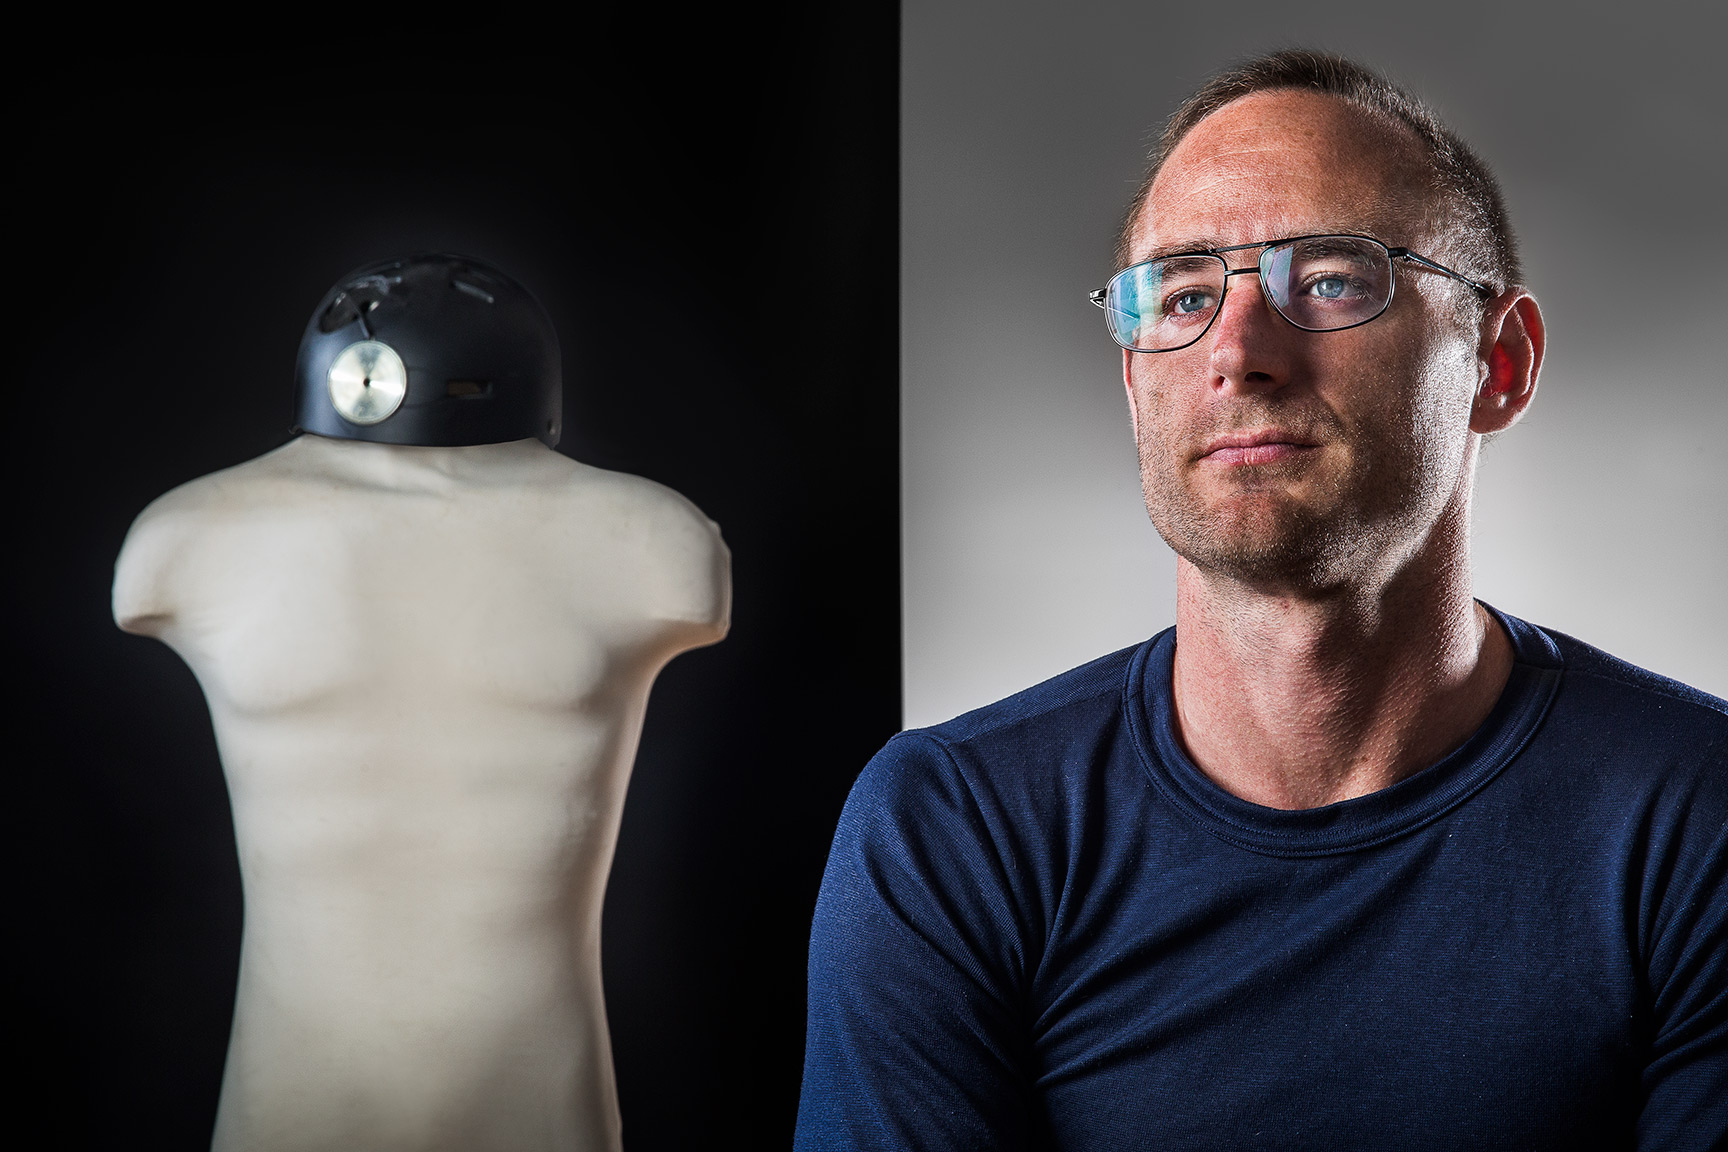 Dr. Lee von Kraus scientist working on brain circuit modification to allow novel cognitive abilities / for Wirtschafts Woche Publication, Germany : Portraits : NY - Portrait Photographer Video, Architectural, Corporate Editorial Location Photography